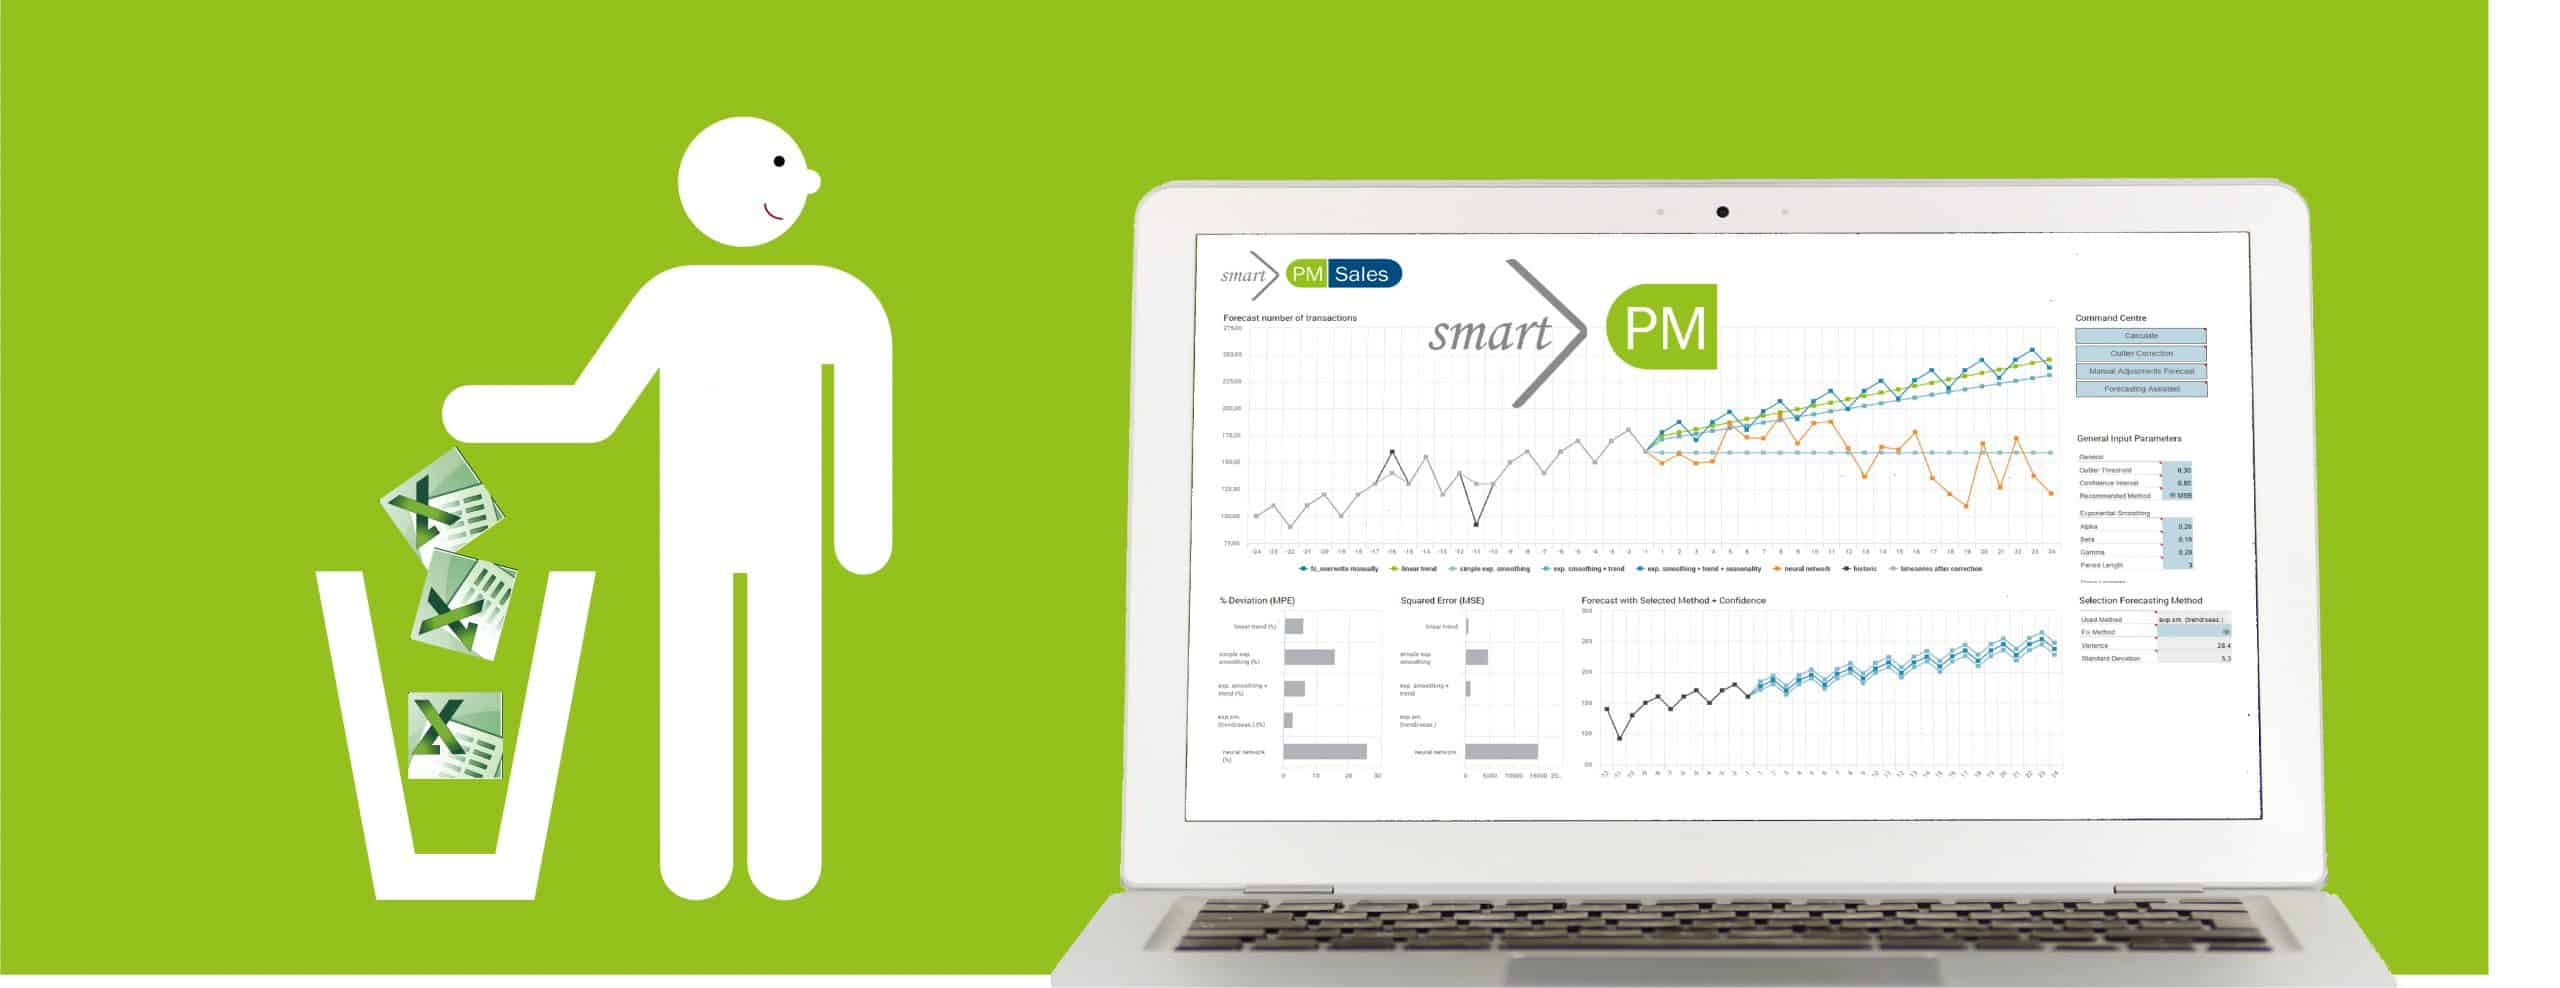 A shortcut to smartplanning with smartPM.solutions Excel in the Bin